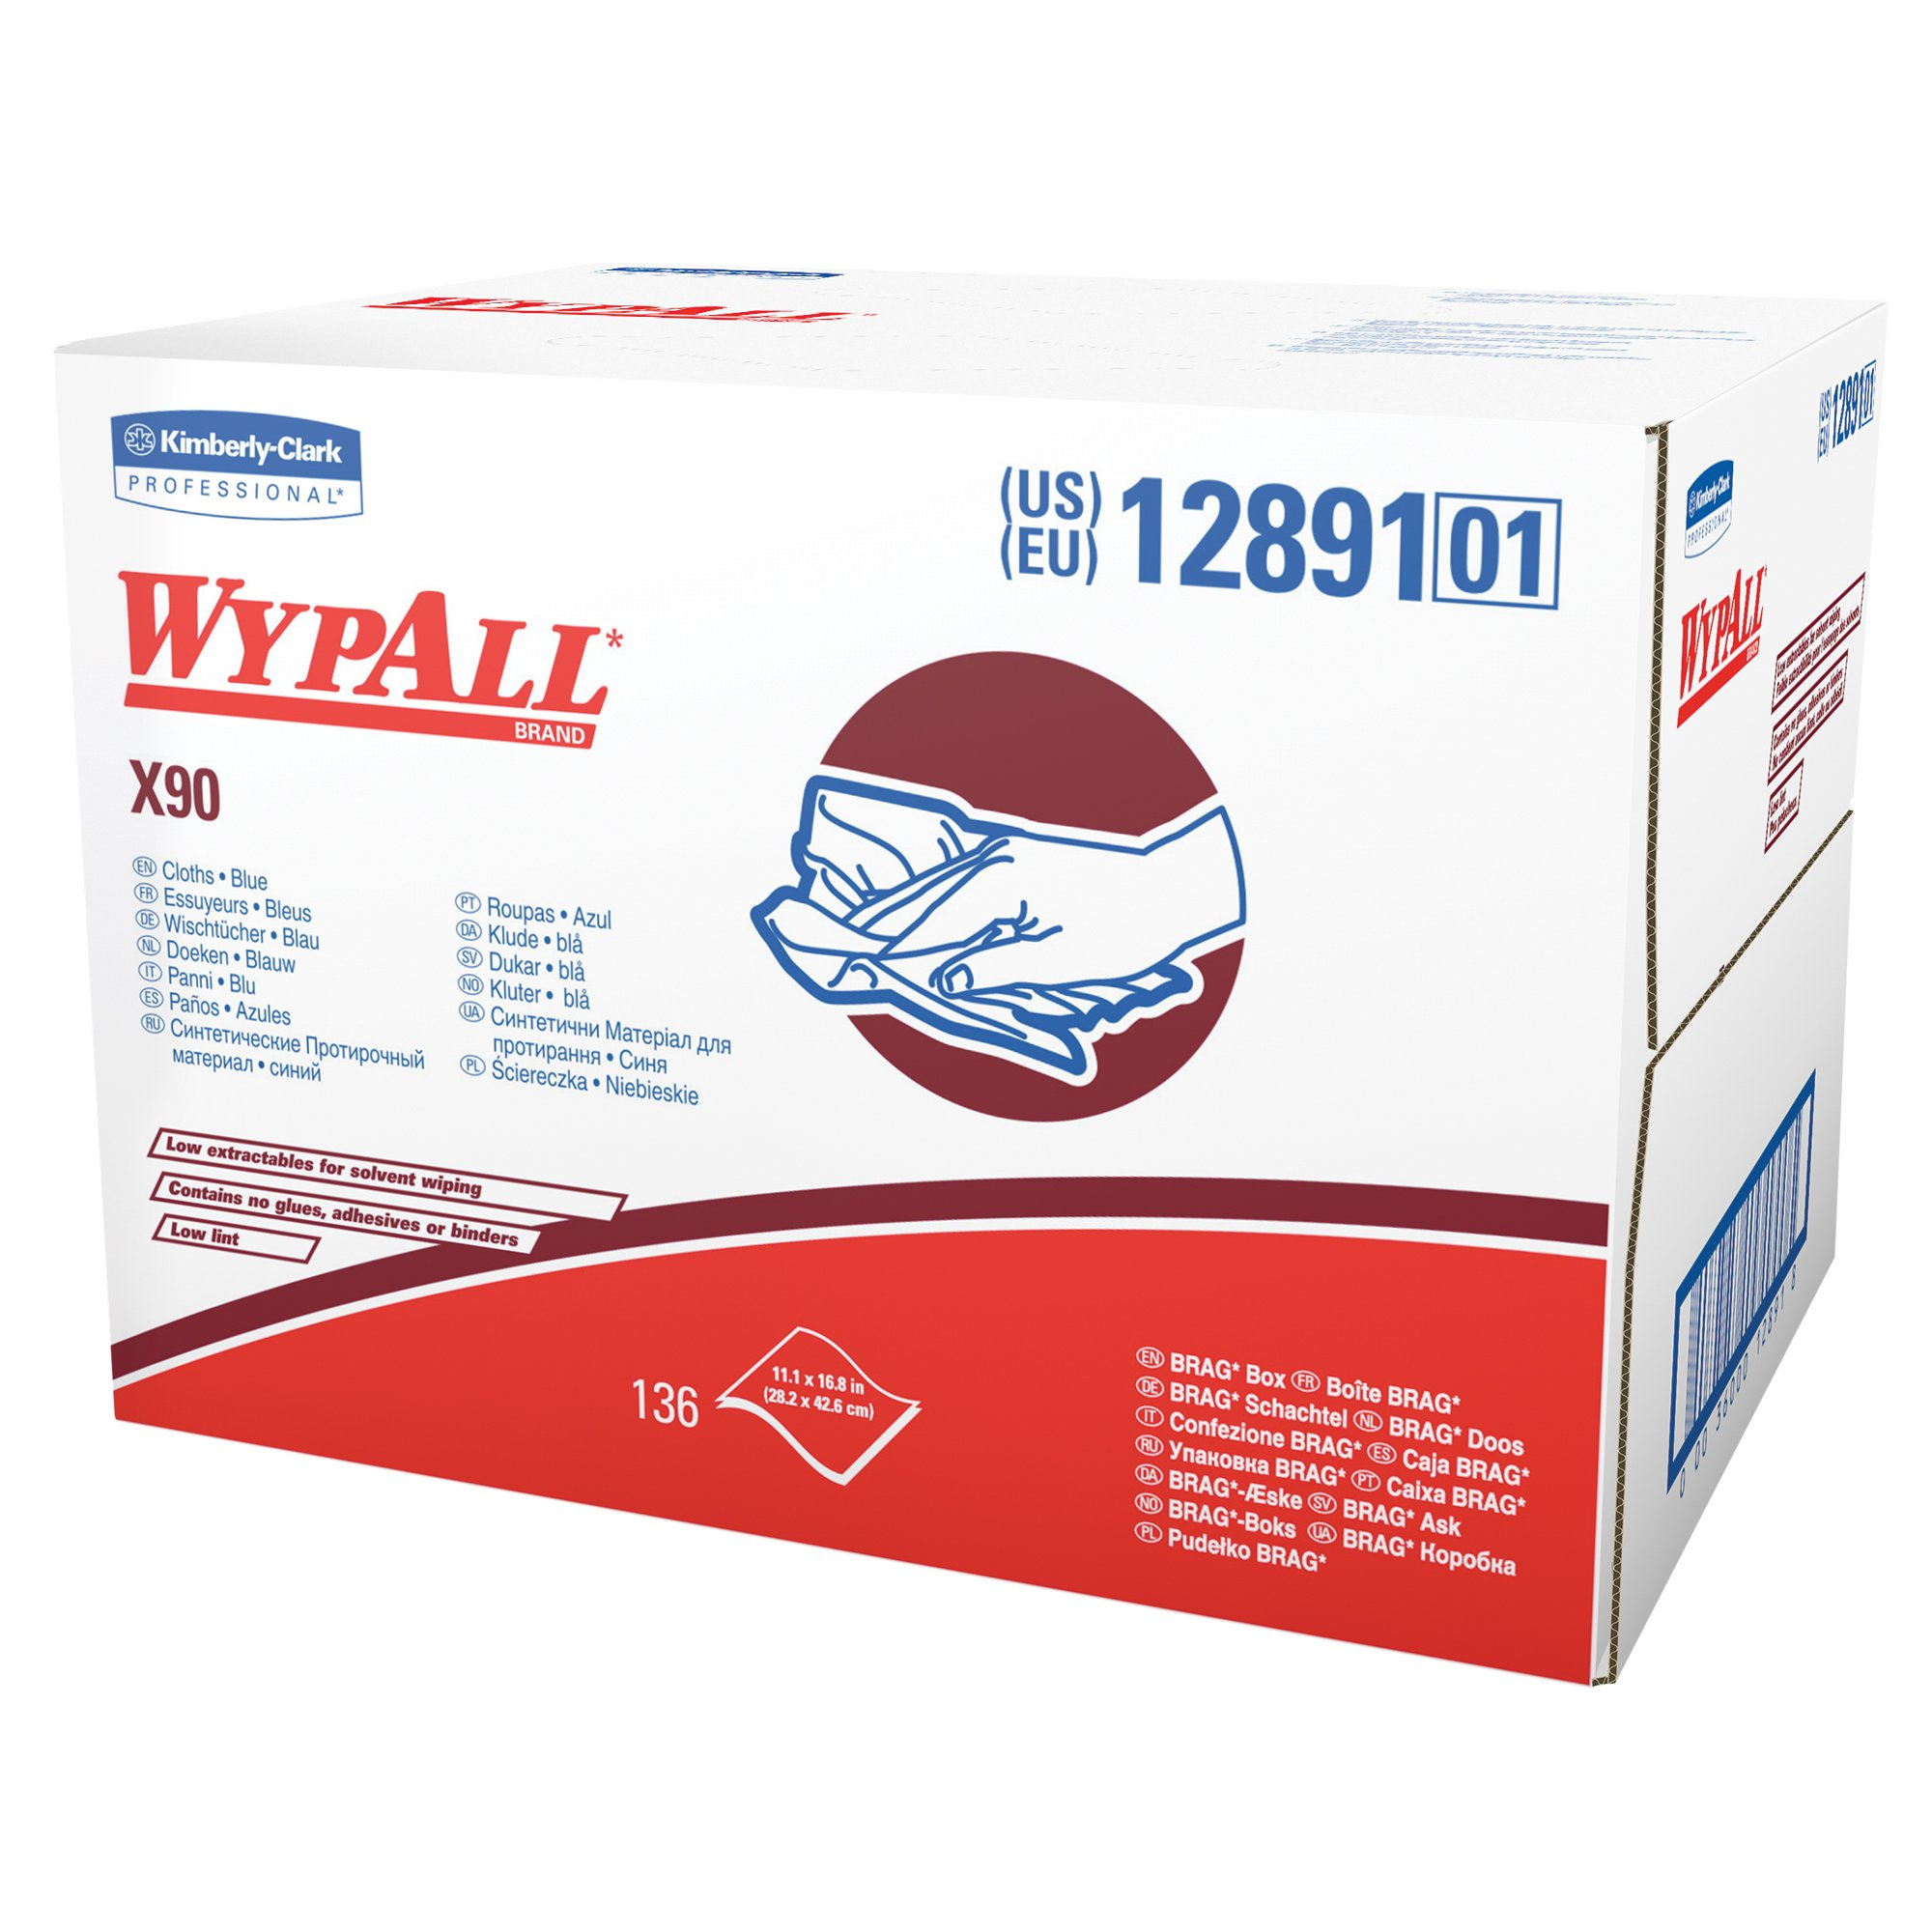 Wypall X90 Extended Use Cloths (12891), Reusable Wipes BRAG BOX, Blue Denim, 1 Box/Case, 136 Sheets/Box